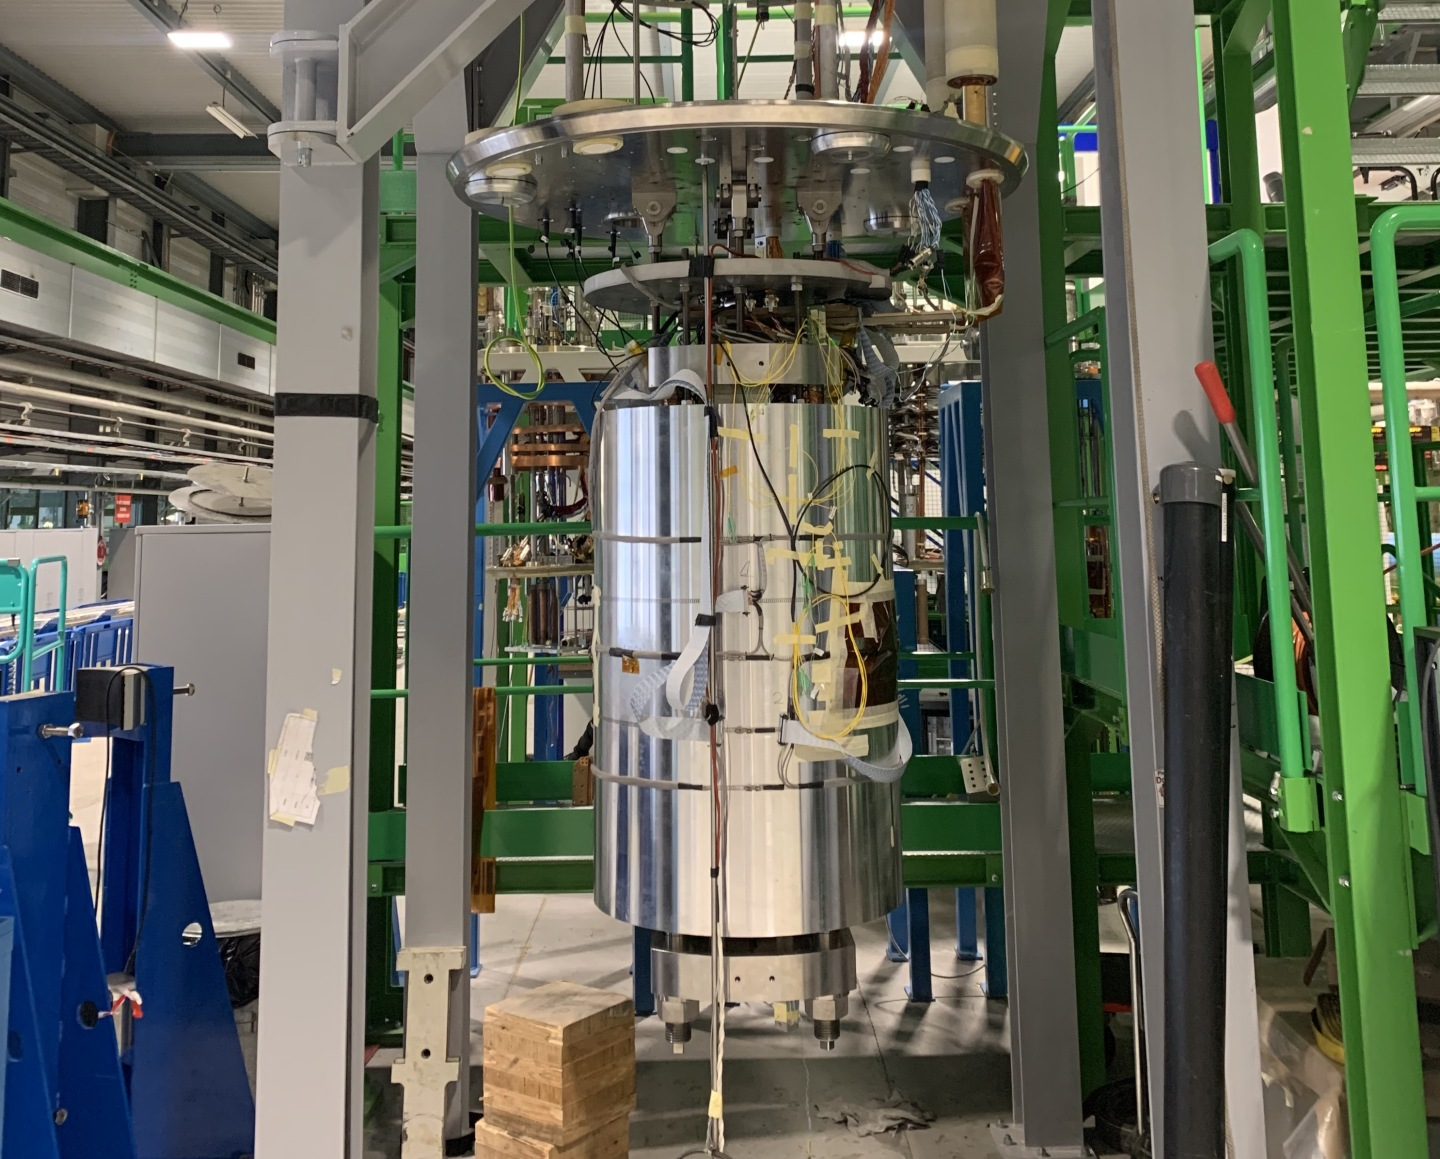 eRMC demonstrator magnet being inserted in a cryostat before tests